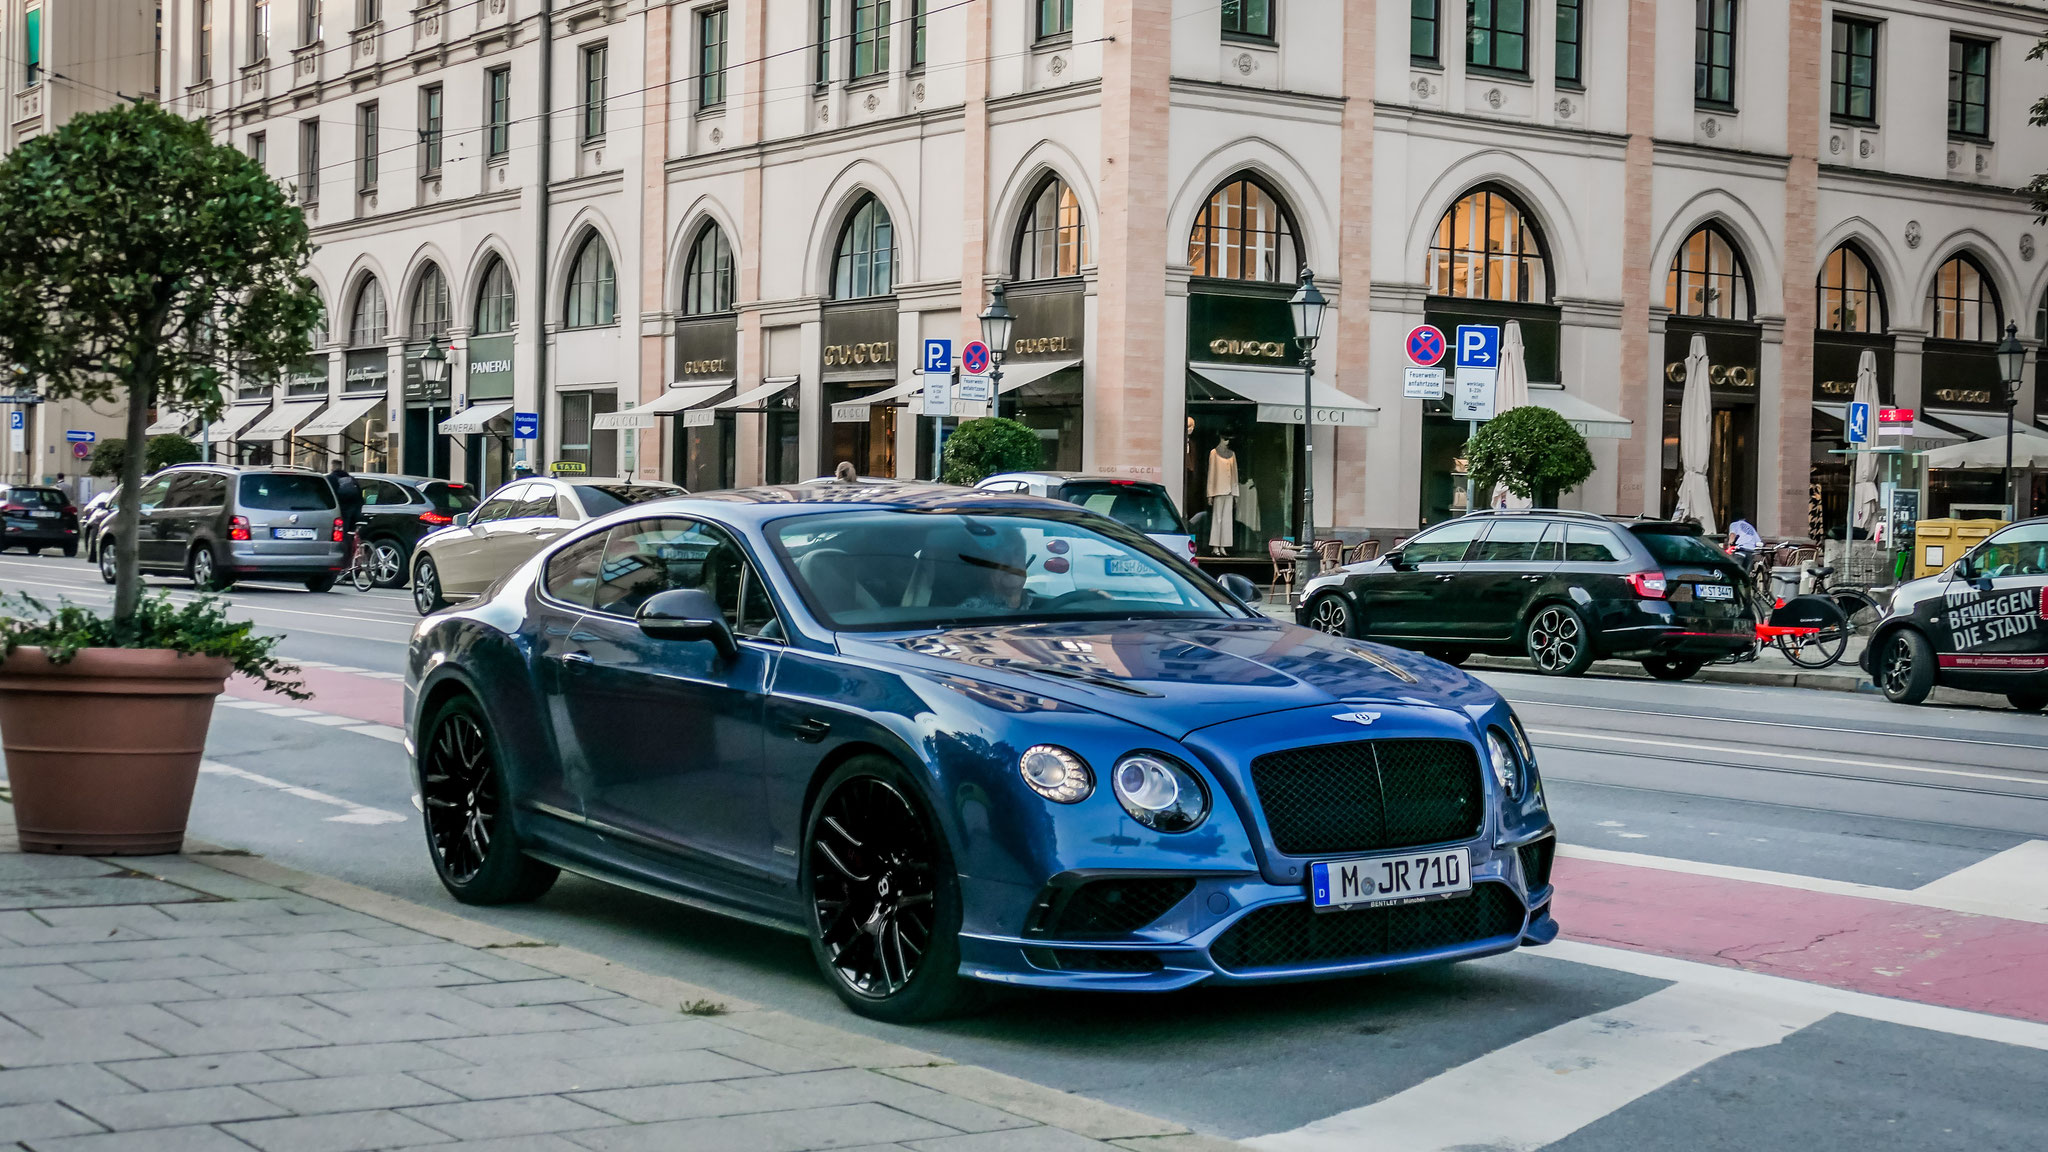 Bentley Continental GT Supersports - M-JR-710